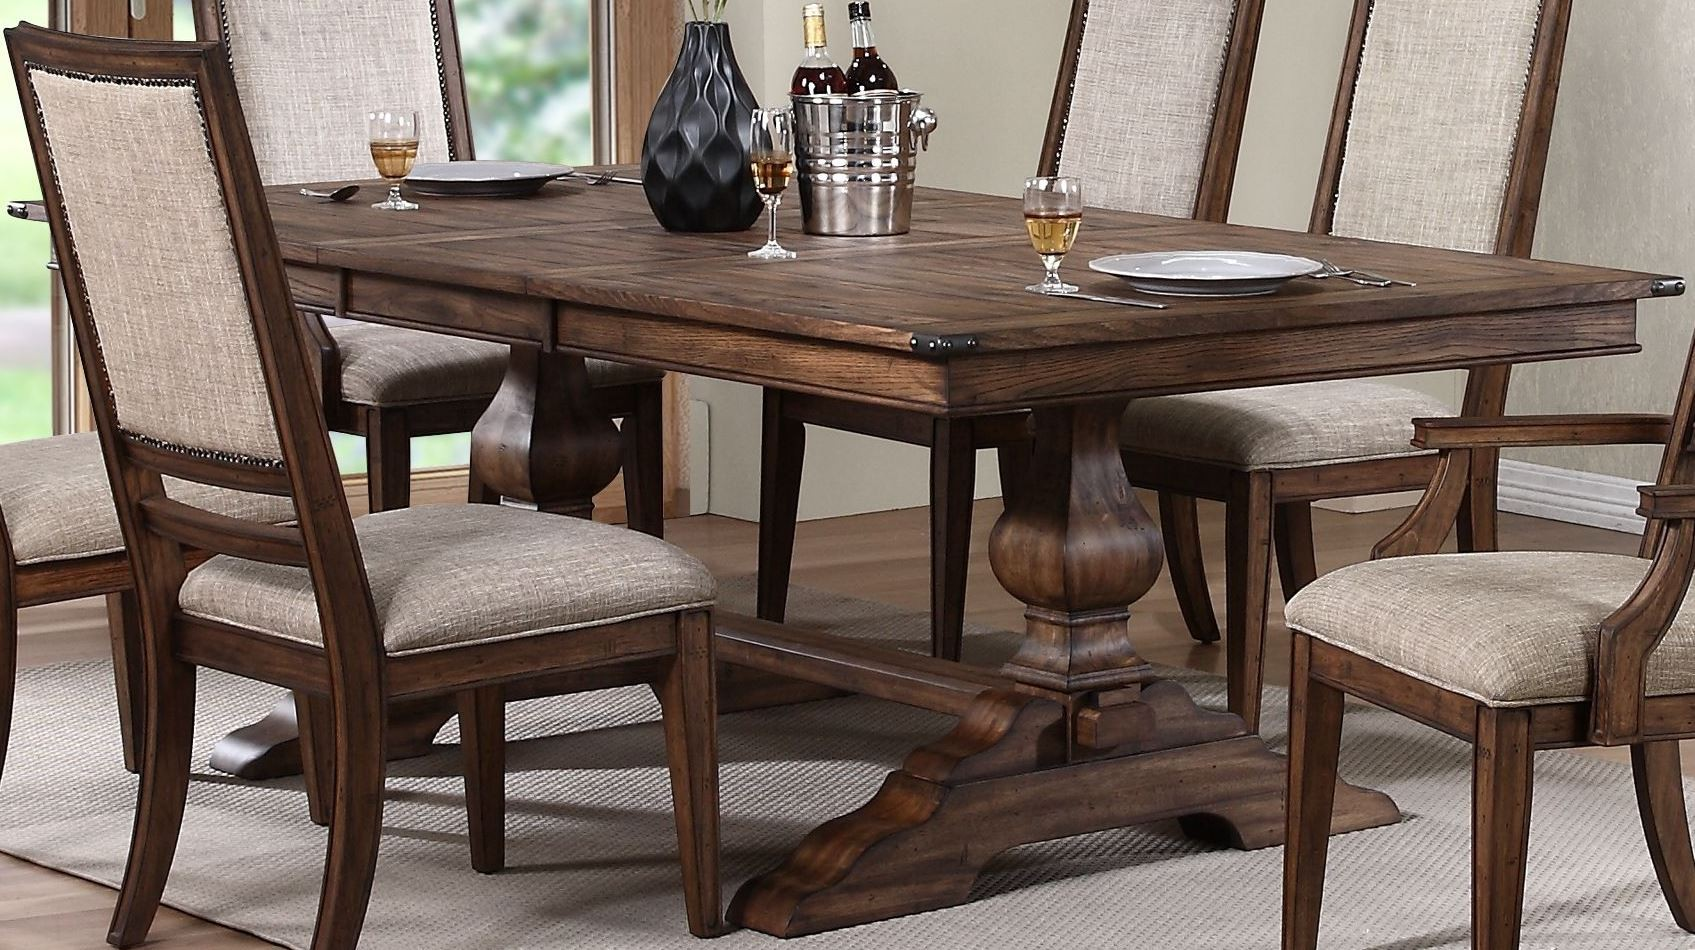 Distressed White Oak Dining Chairs: Sutton Manor Distressed Oak Manor Extendable Dining Table